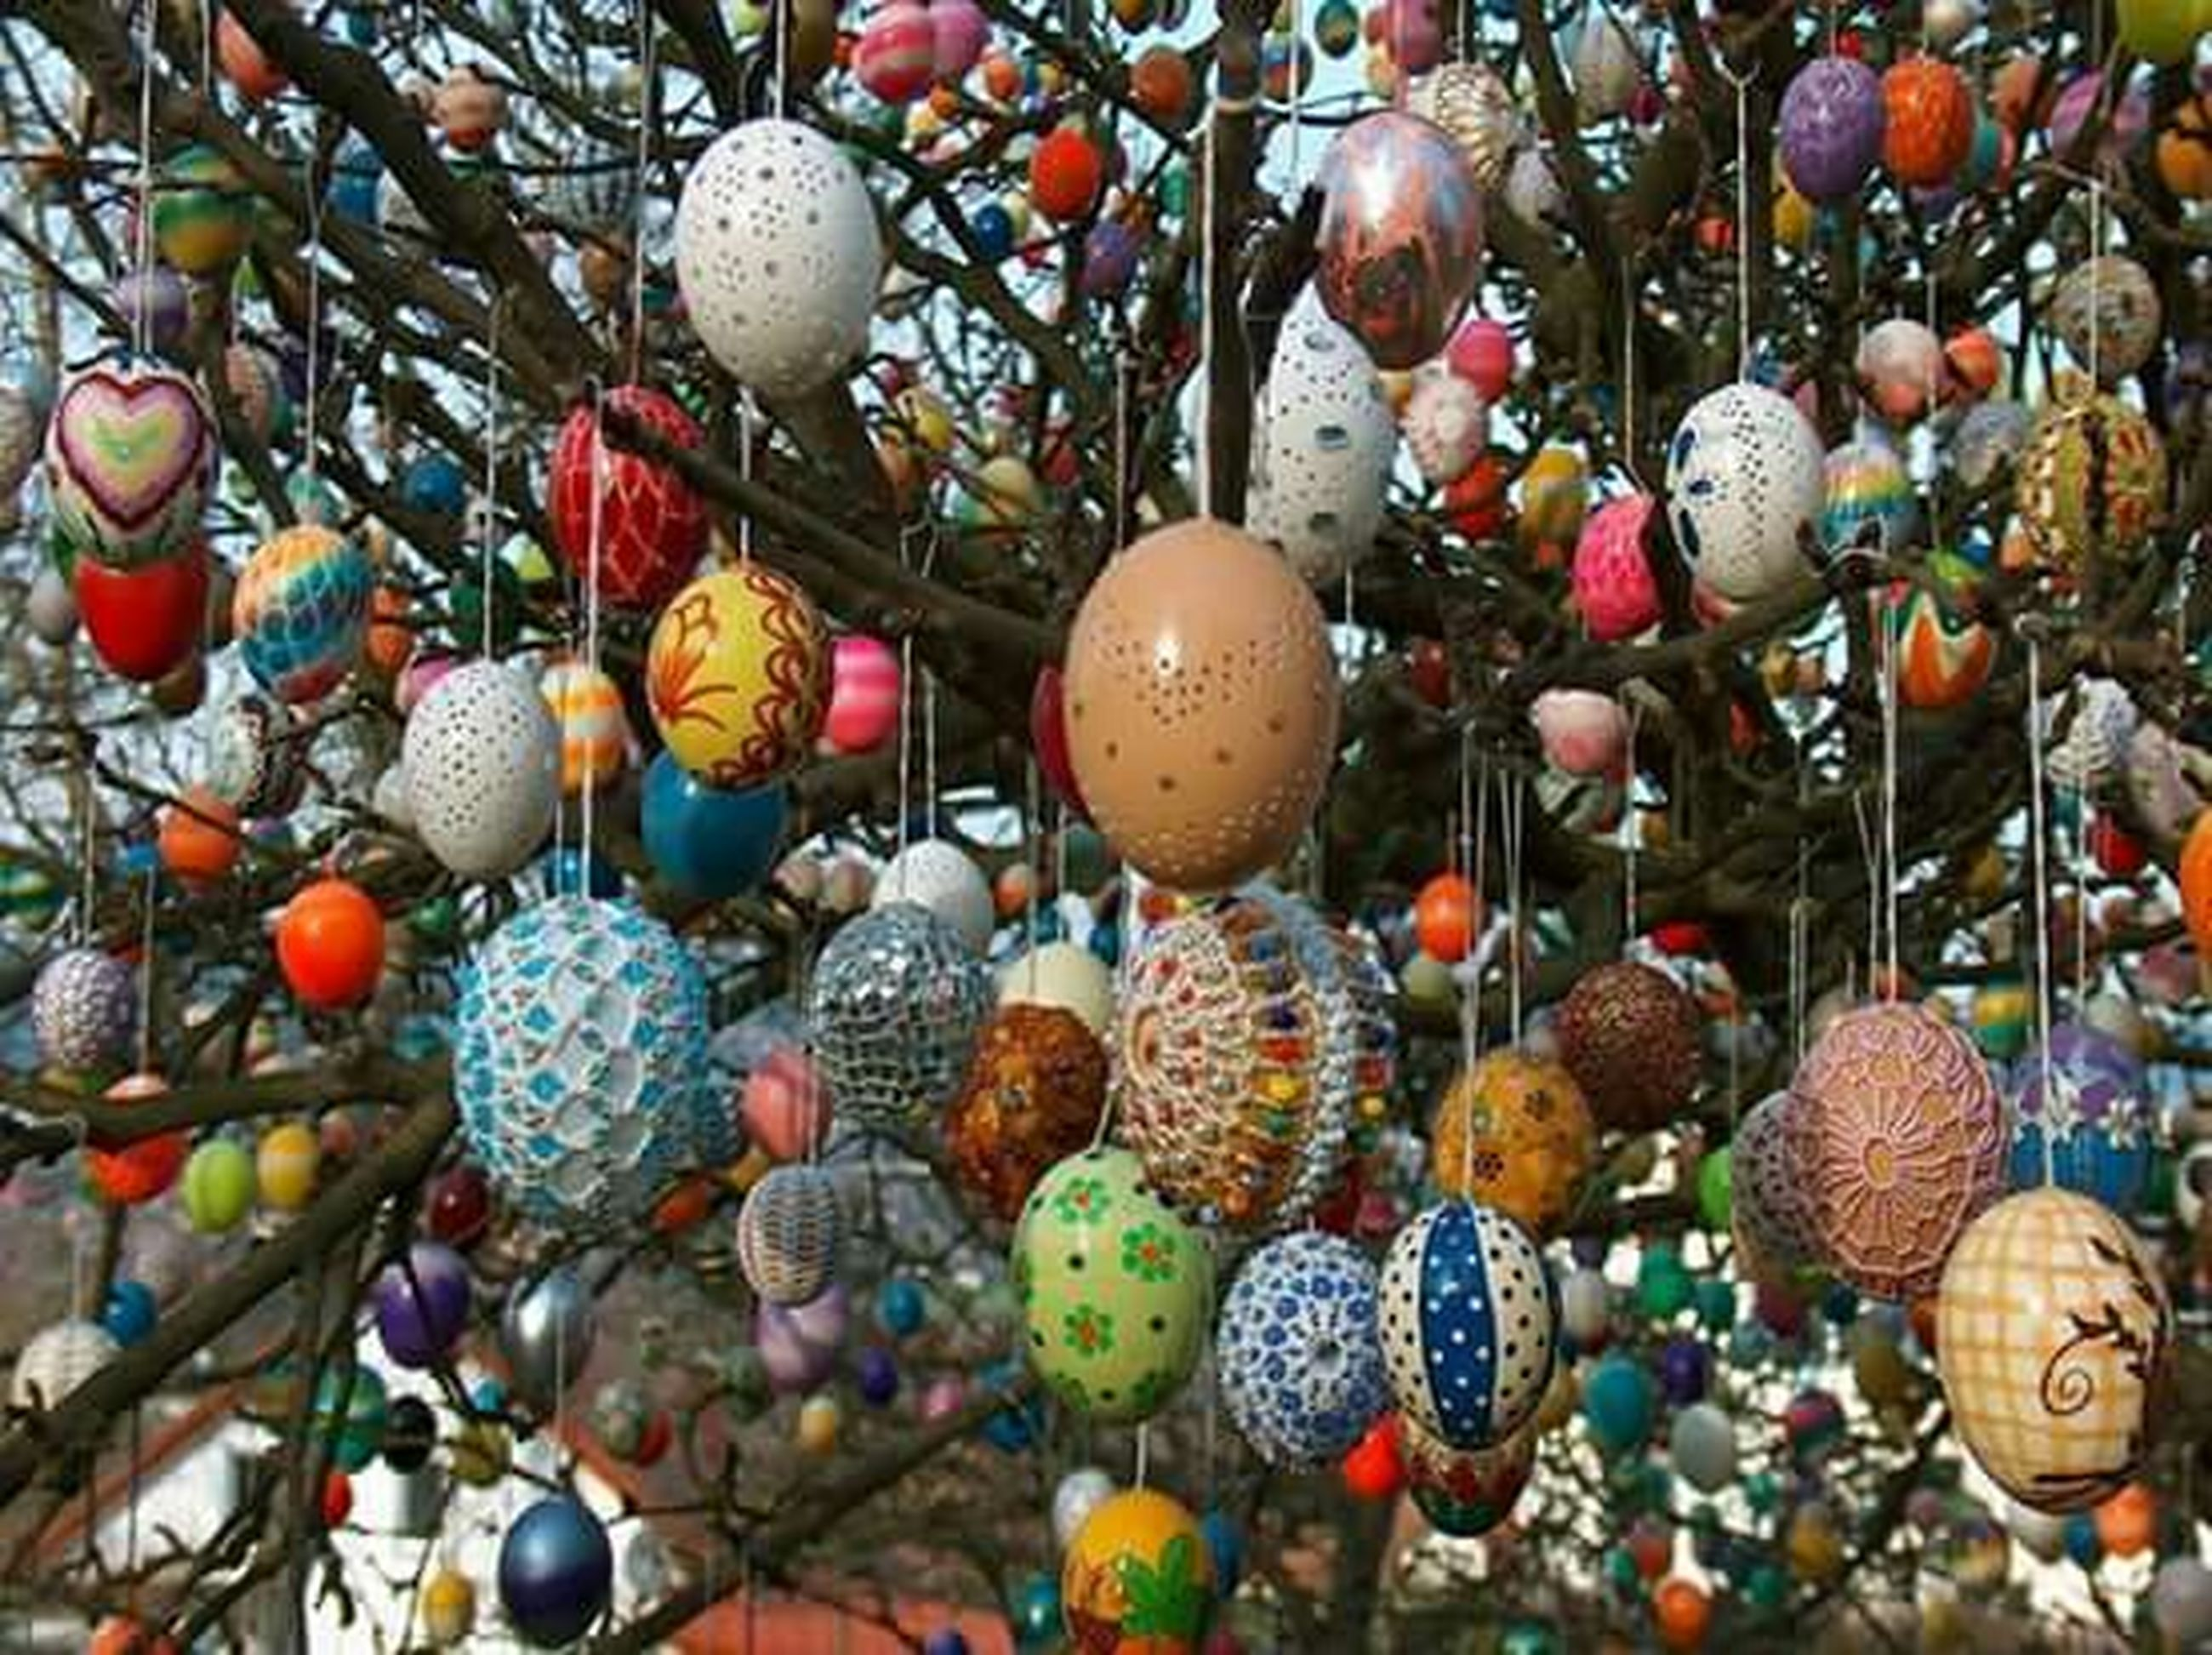 large group of objects, abundance, variation, hanging, multi colored, decoration, close-up, no people, still life, high angle view, celebration, choice, arrangement, day, outdoors, sphere, tradition, group of objects, christmas ornament, collection